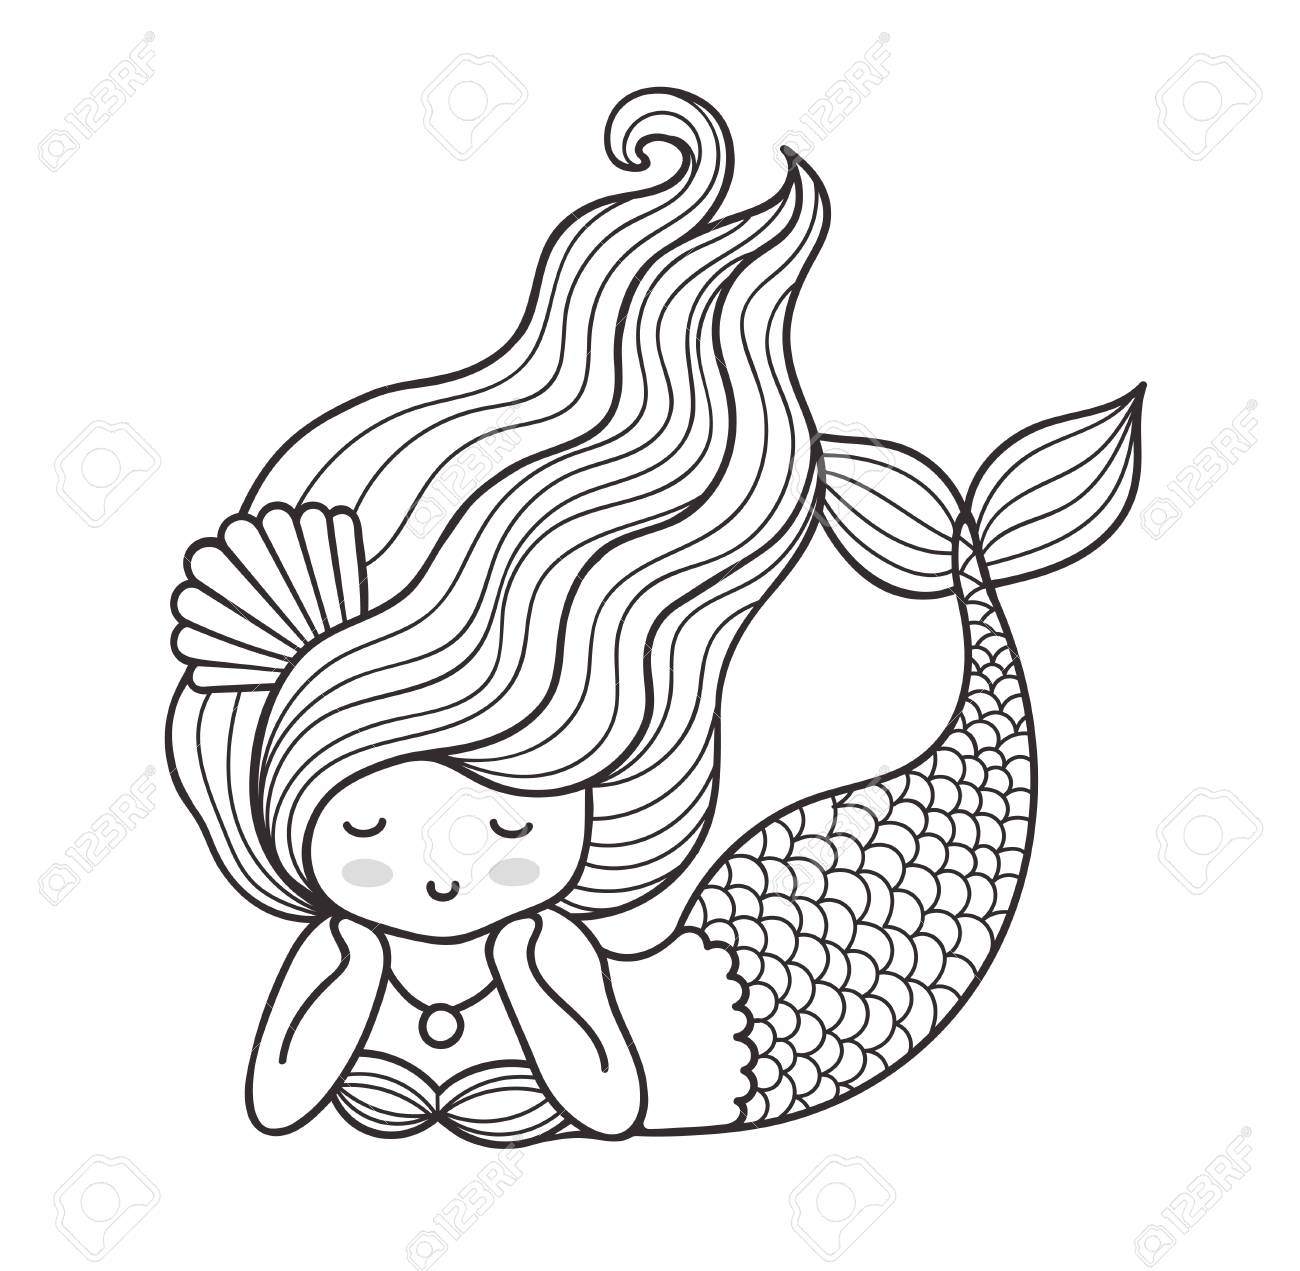 Dreamy Lying Mermaid With Long Curly Hair Vector Outline Illustration